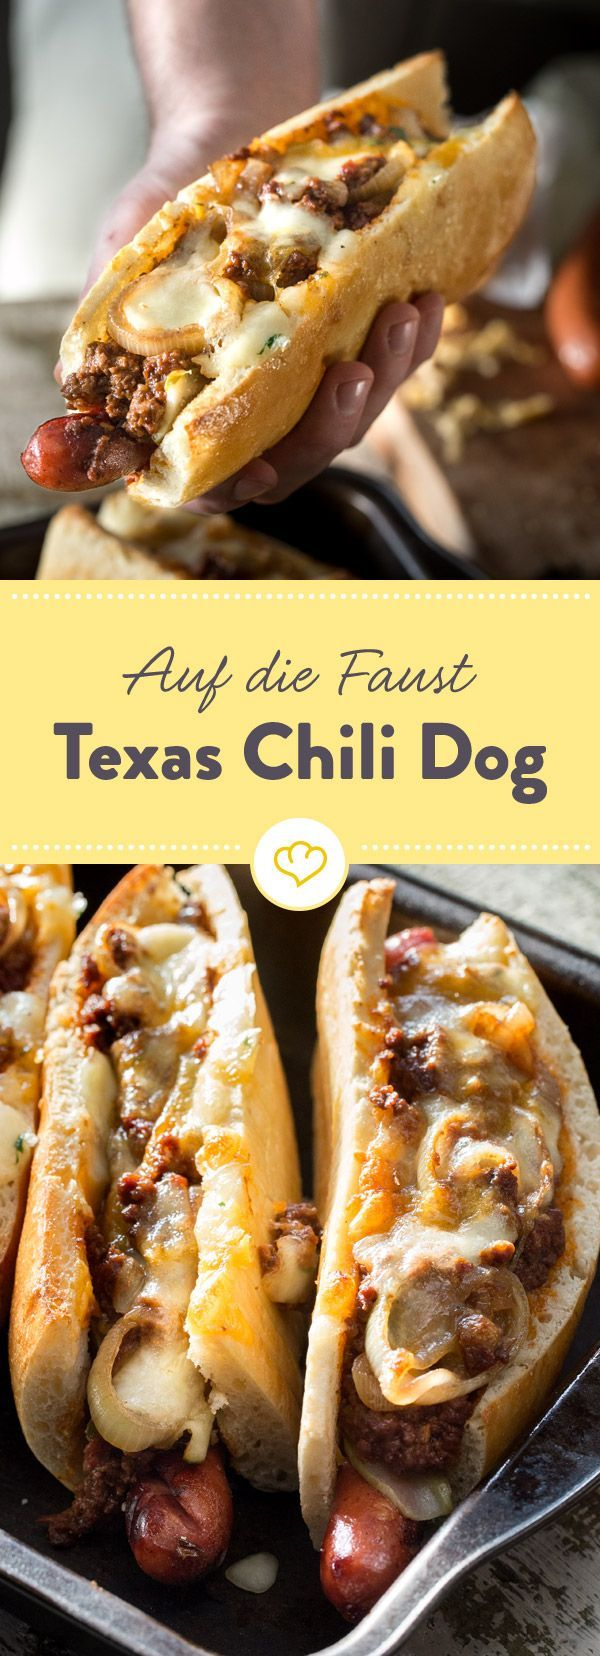 Photo of Texas Chili Dog: Straight on the fist and delicious